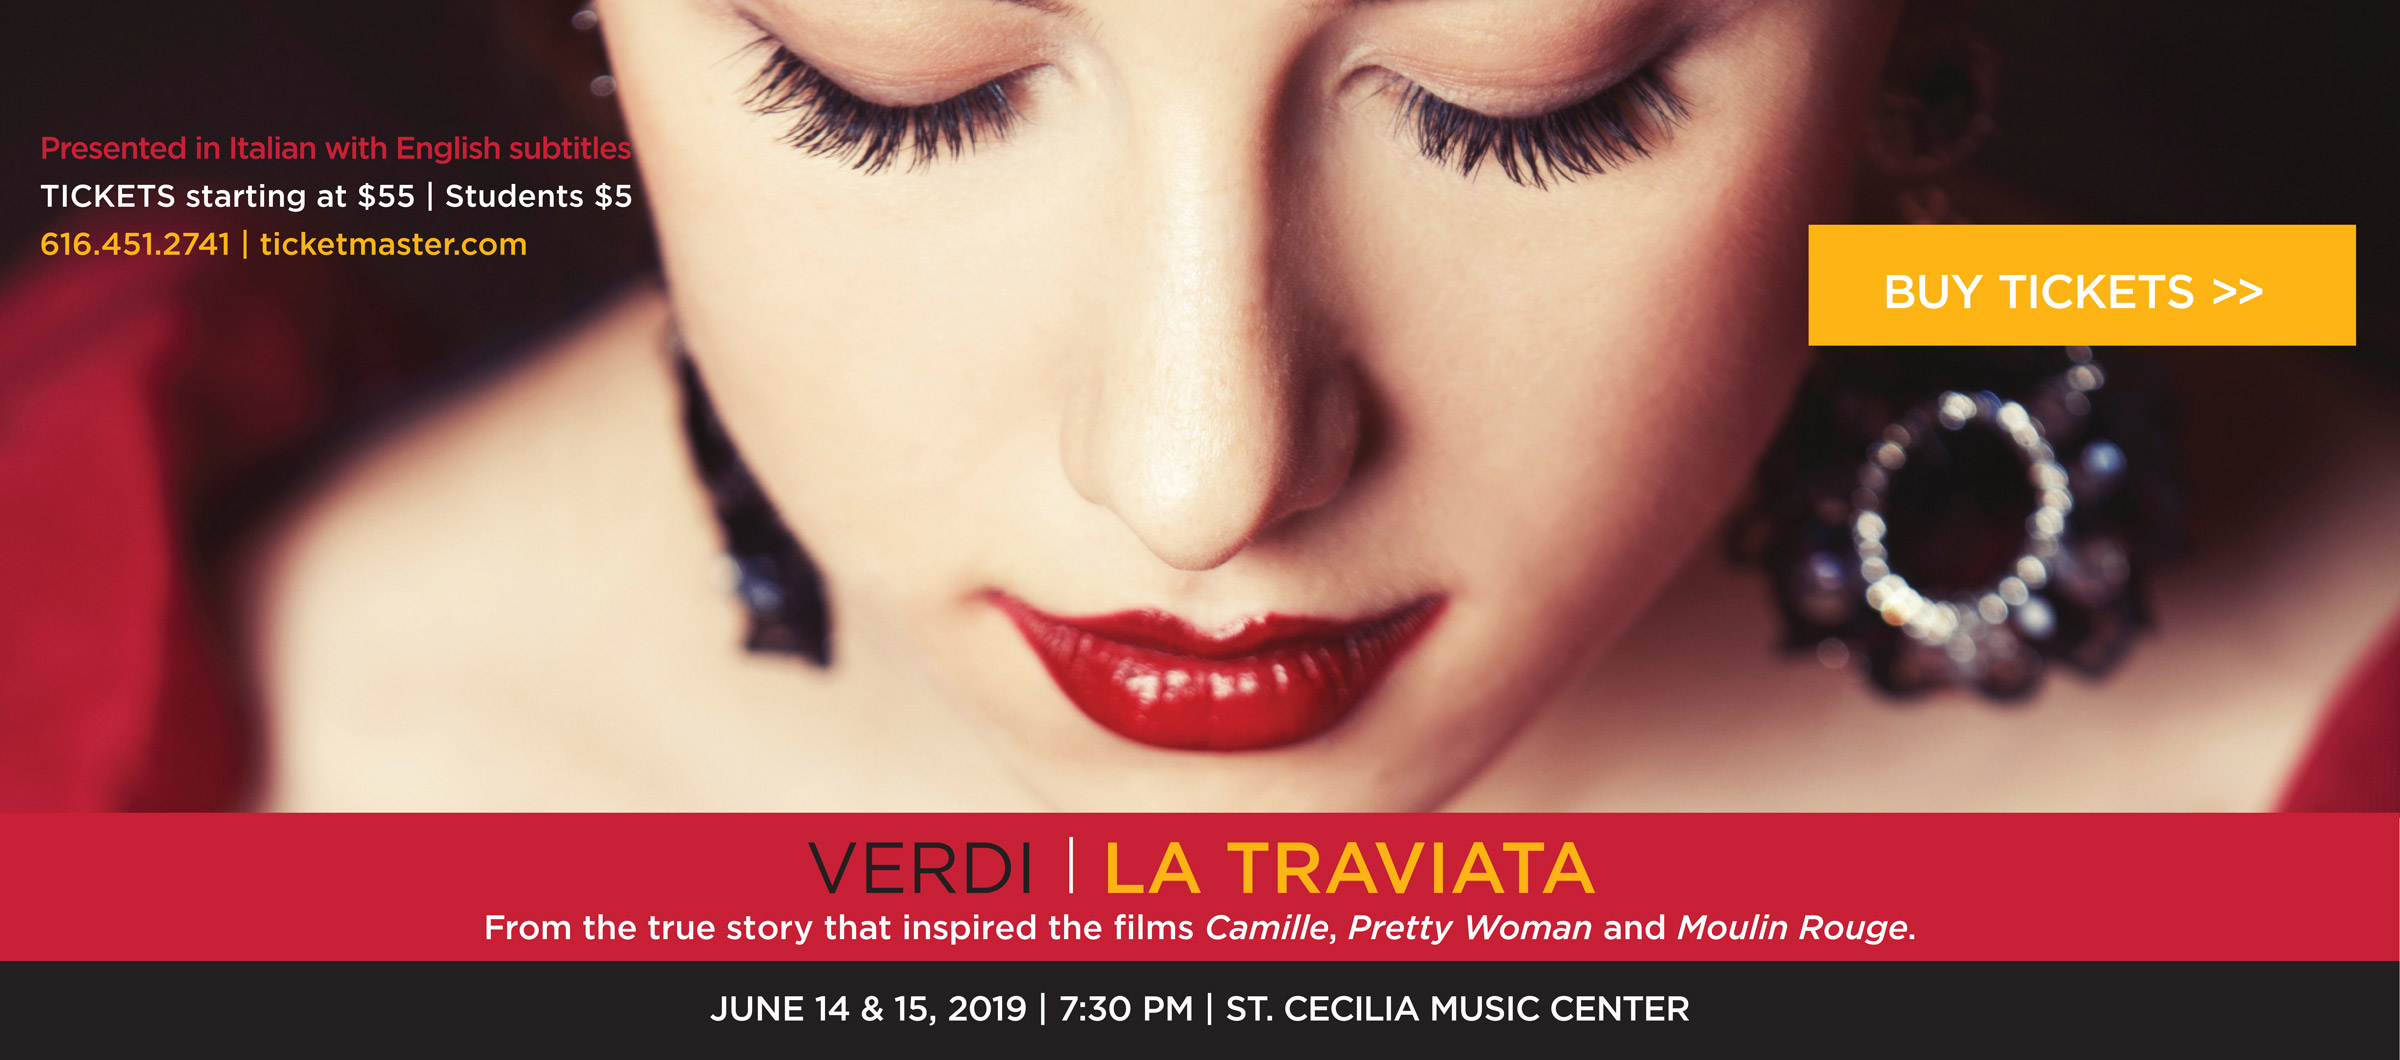 La Traviata by Verdi. From the true story that inspired the films Camille, Pretty Woman, and Moulin Rouge. June 14 & 15, 2019, 7:30 PM at St. Cecelia Music Center. Presented in Italian with English subtitles. Tickets starting at $55, students $5. Call 616-451-2741 or visit ticketmaster.com. Holiday buy-one-get-one 50% off on tickets bought through the opera box office until December 21st. Group and $5 student tickets not included.